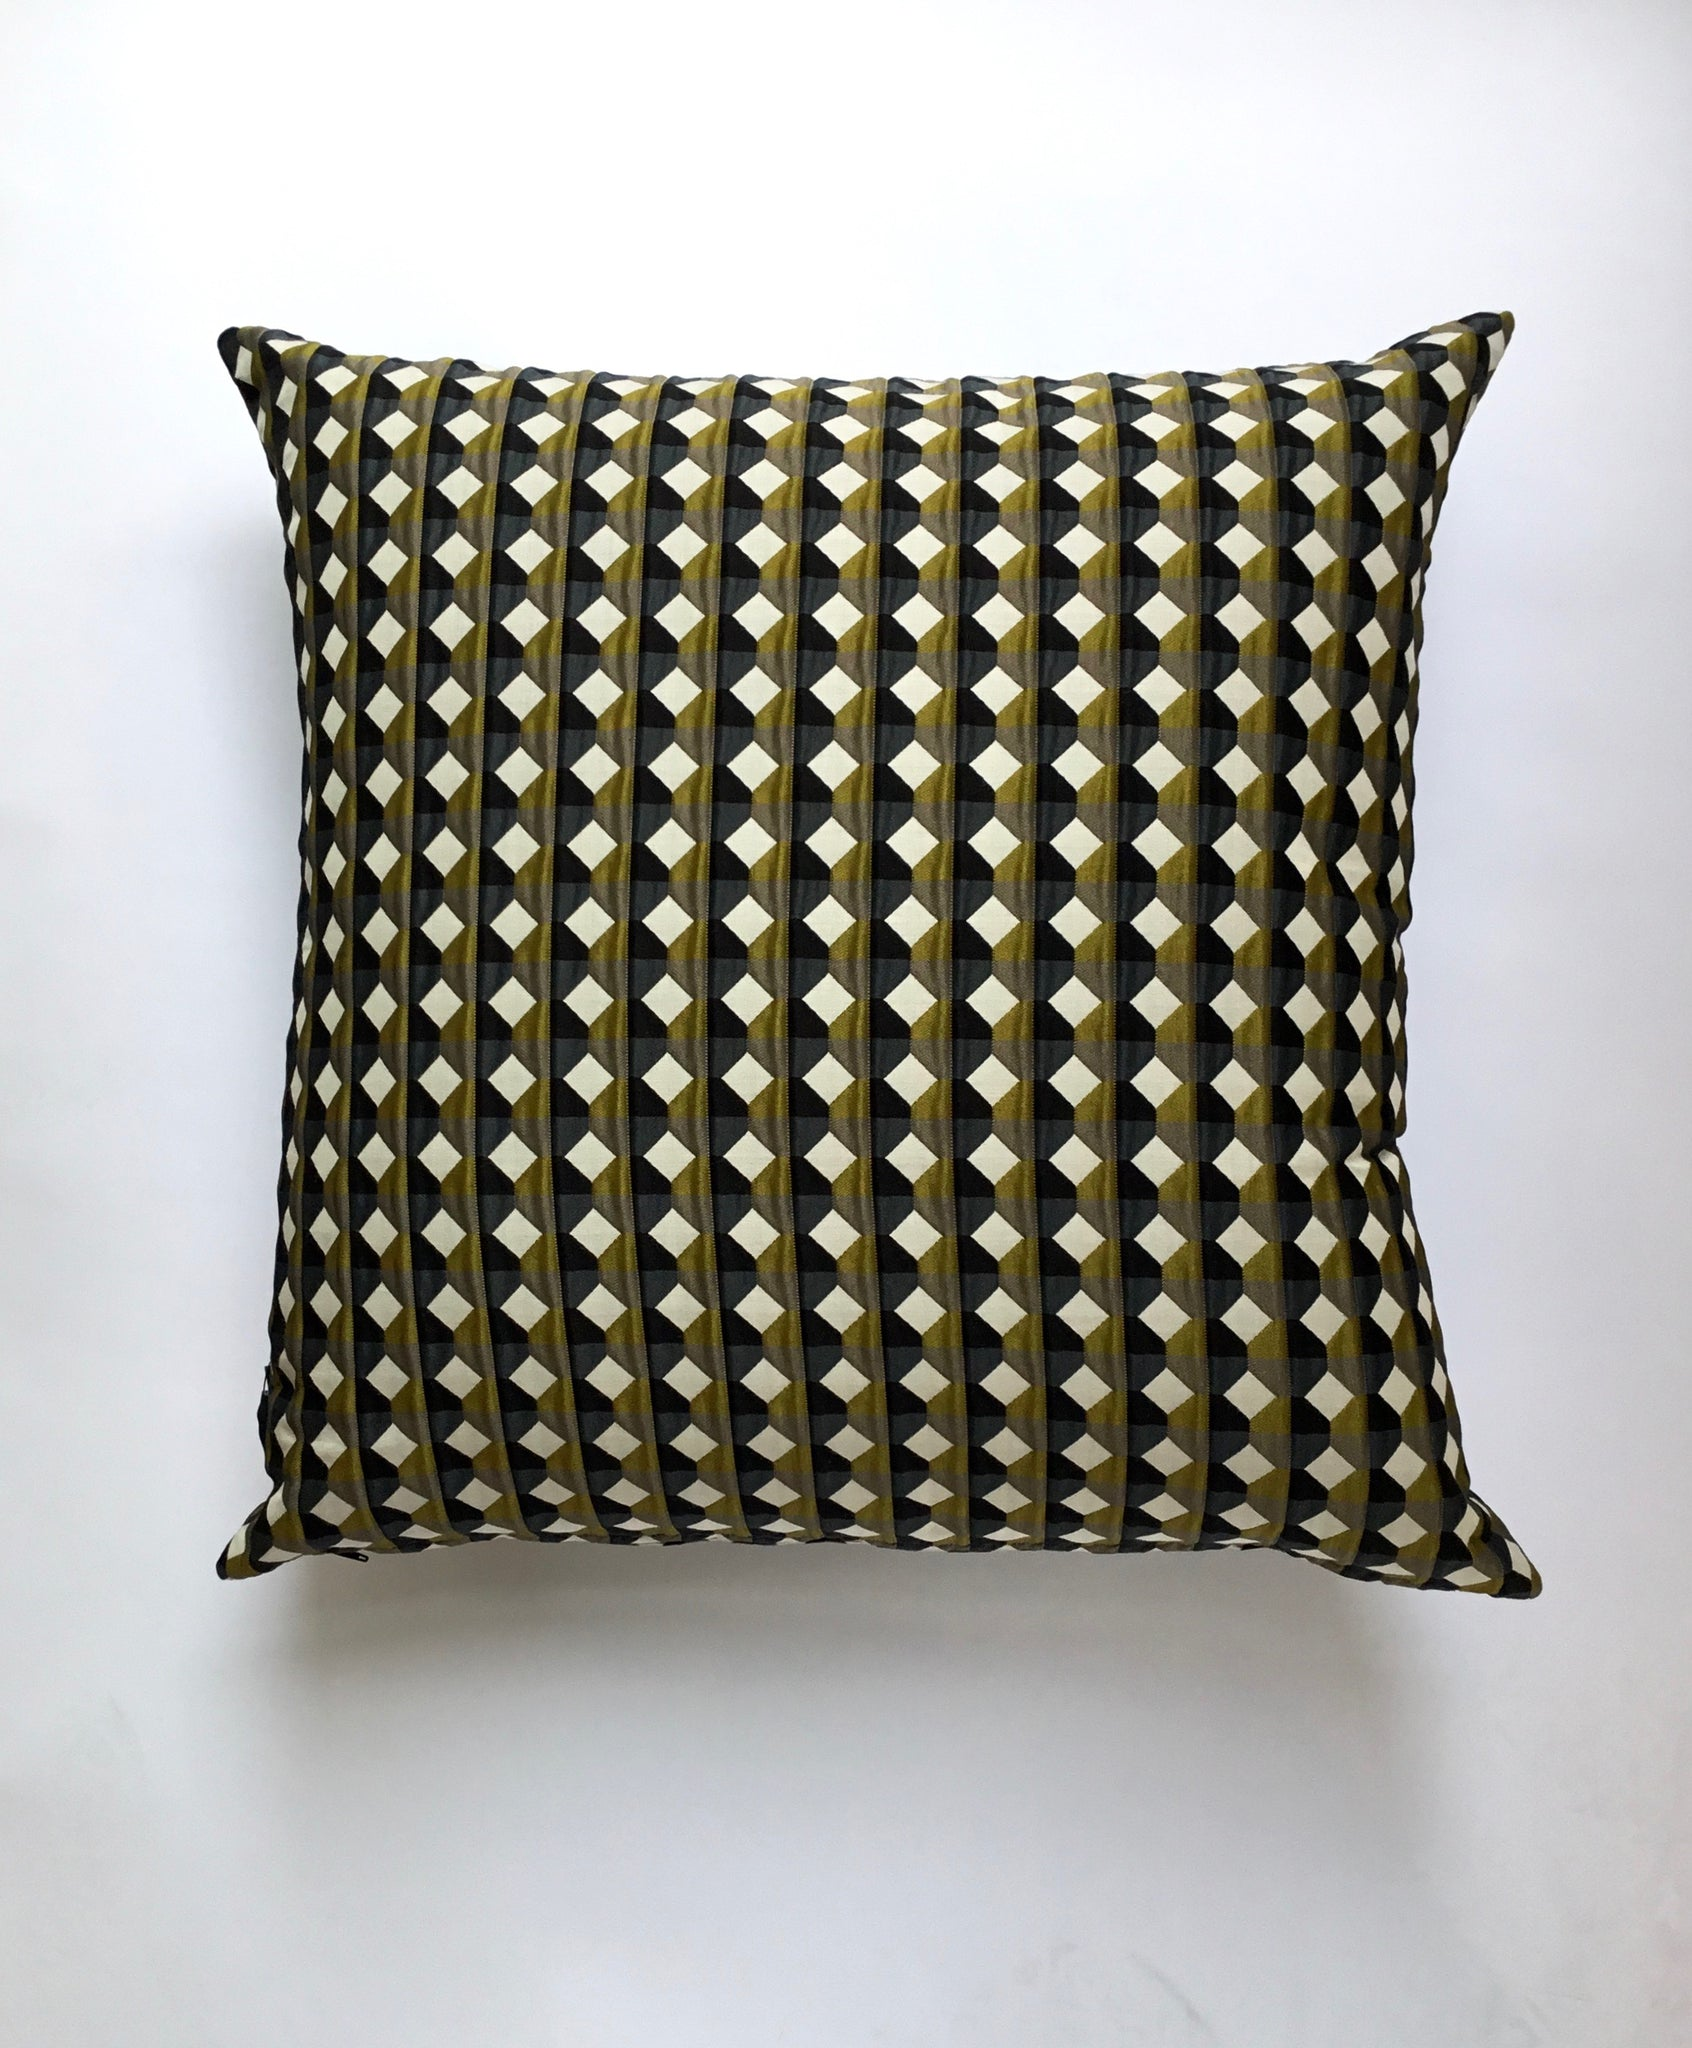 Margo Selby Rio II Large Square Cushion